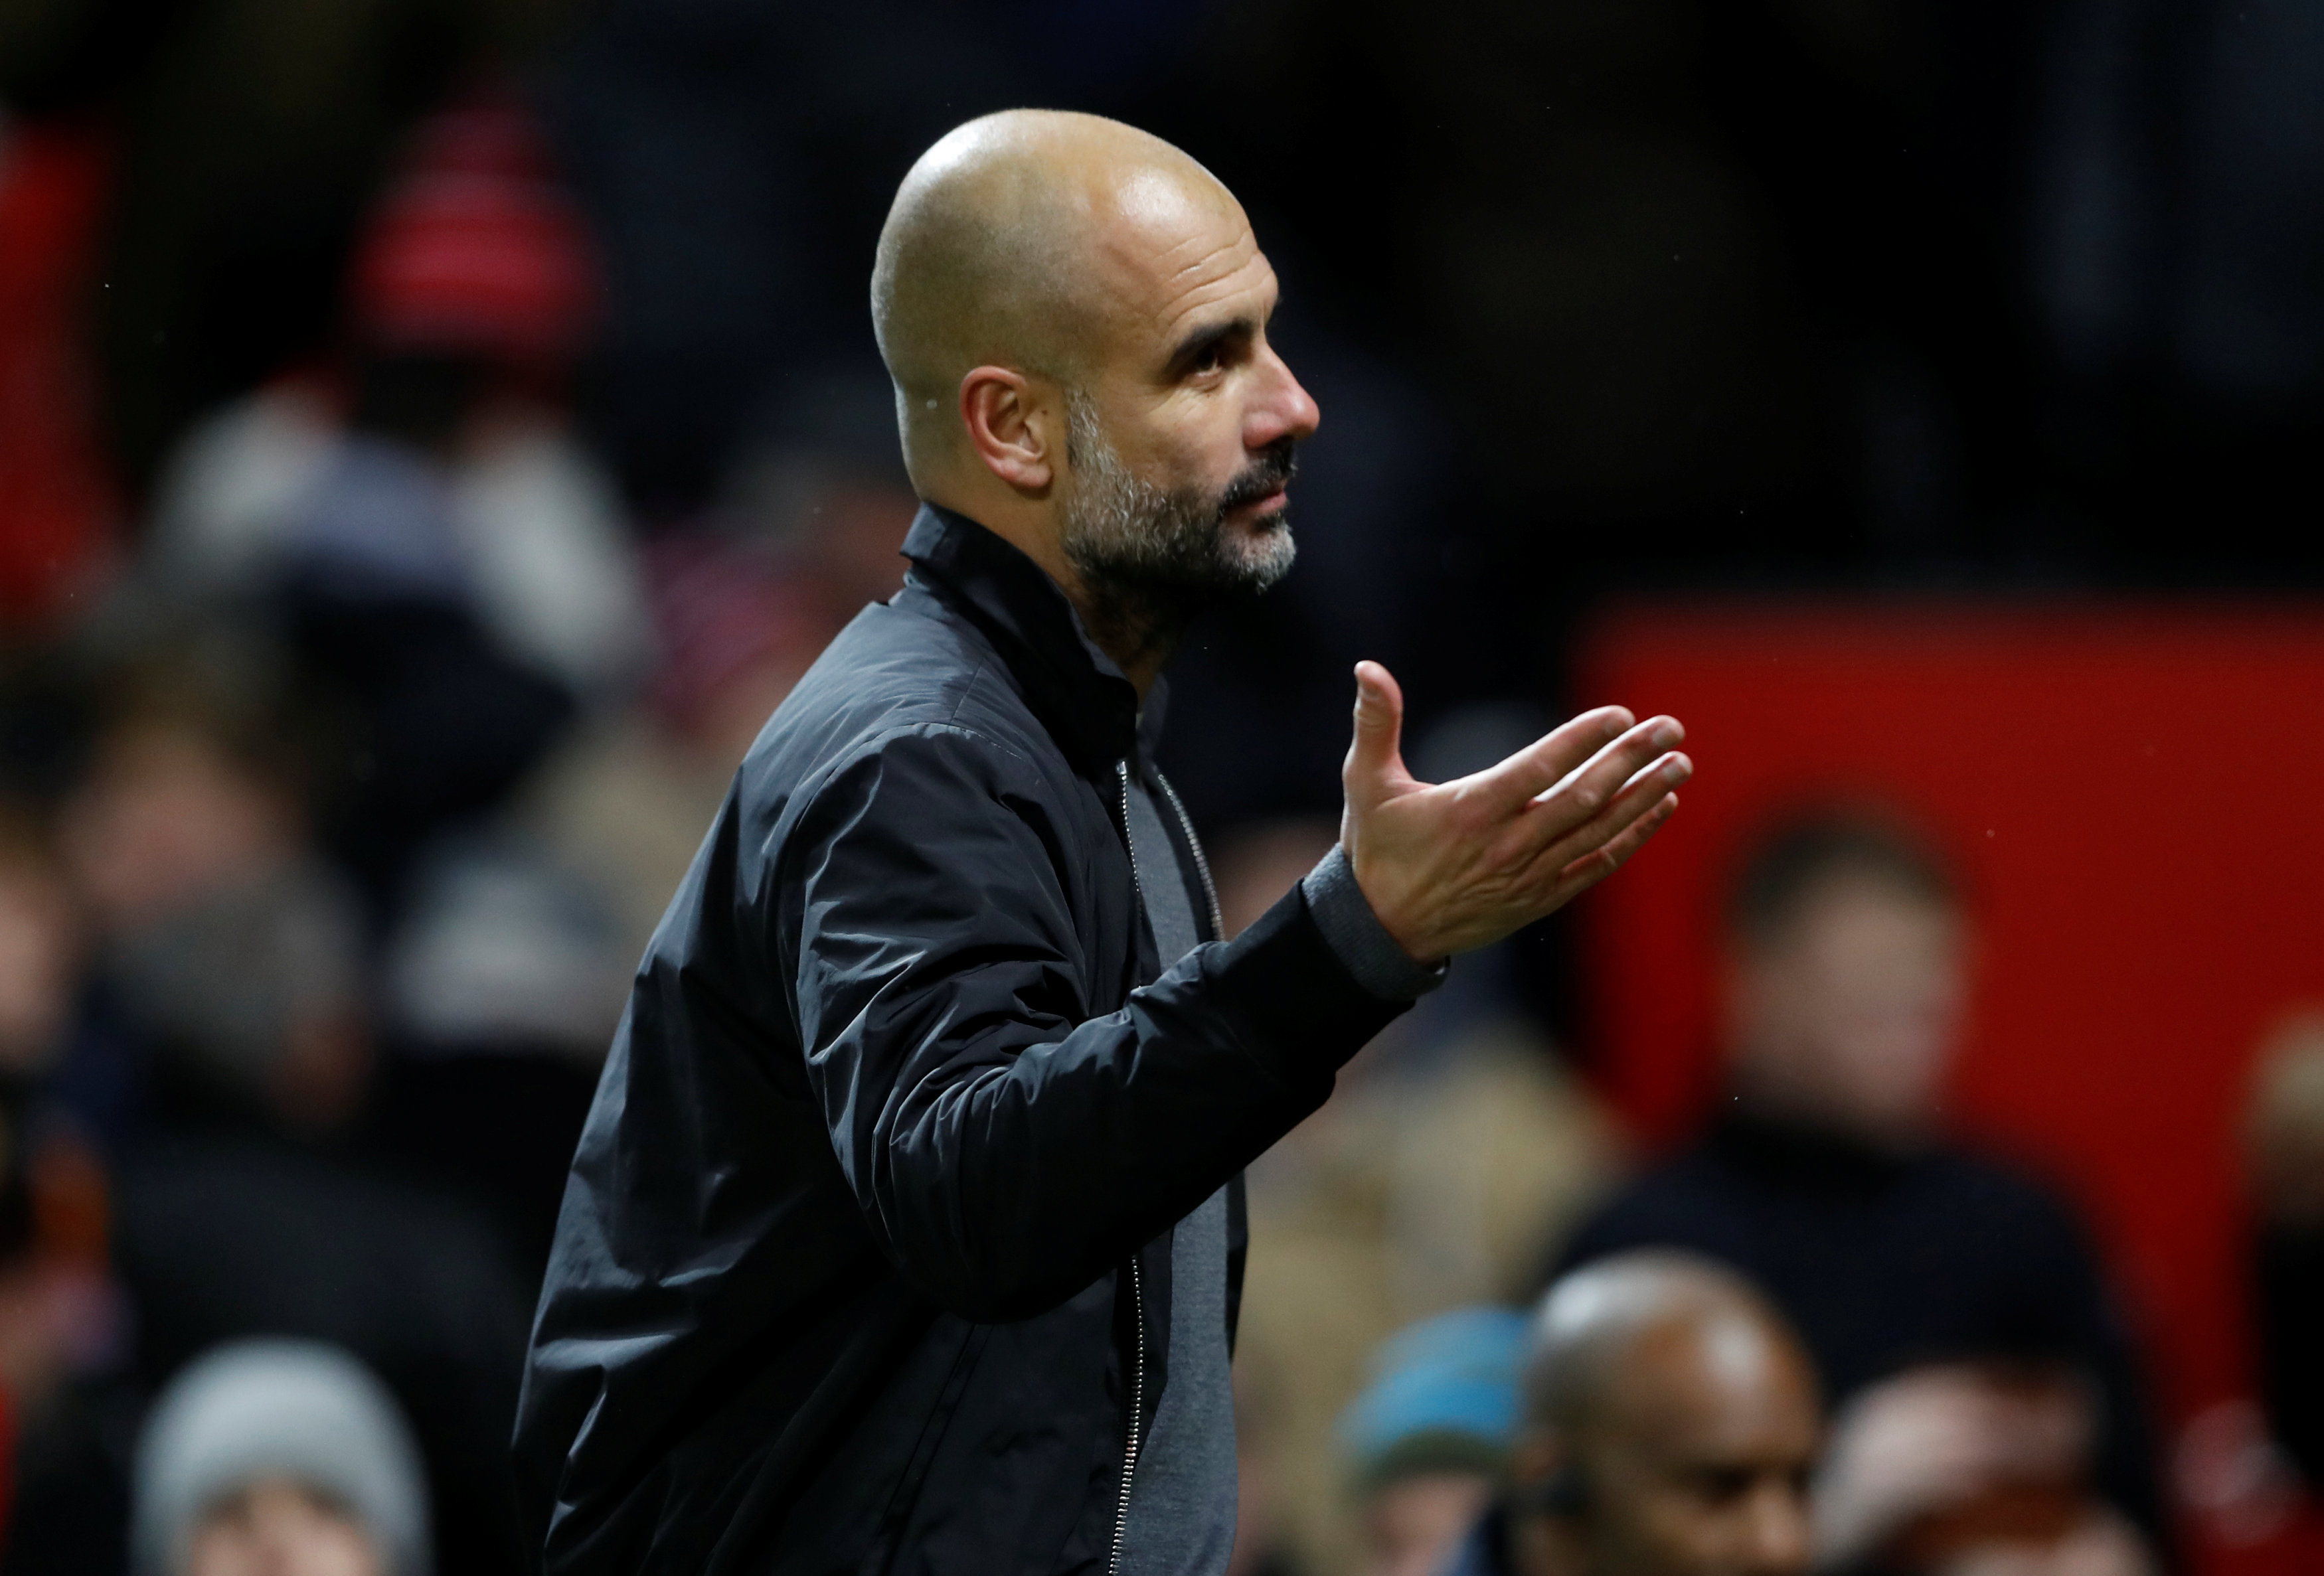 Football: City celebrations not excessive, says Guardiola